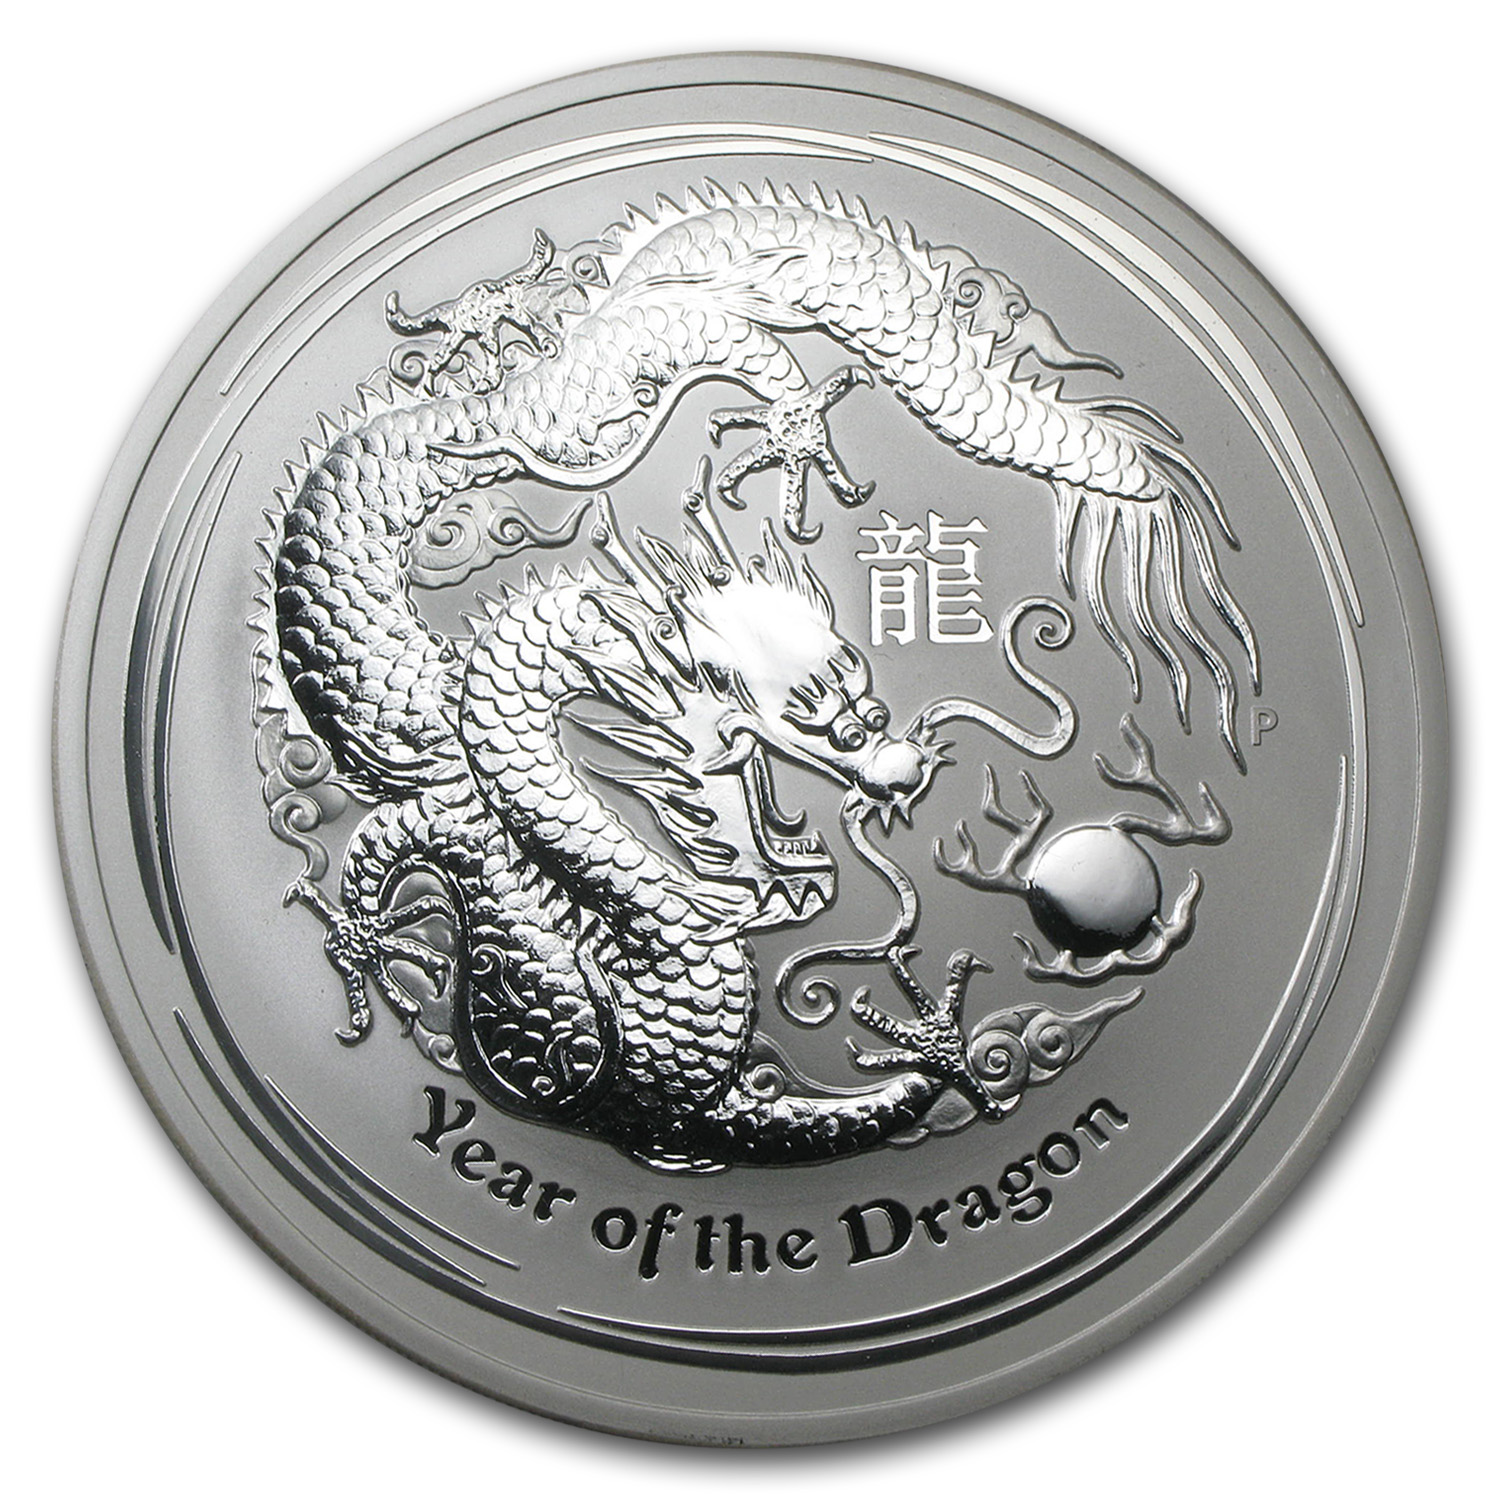 2012 Australia 10 oz Silver Year of the Dragon BU